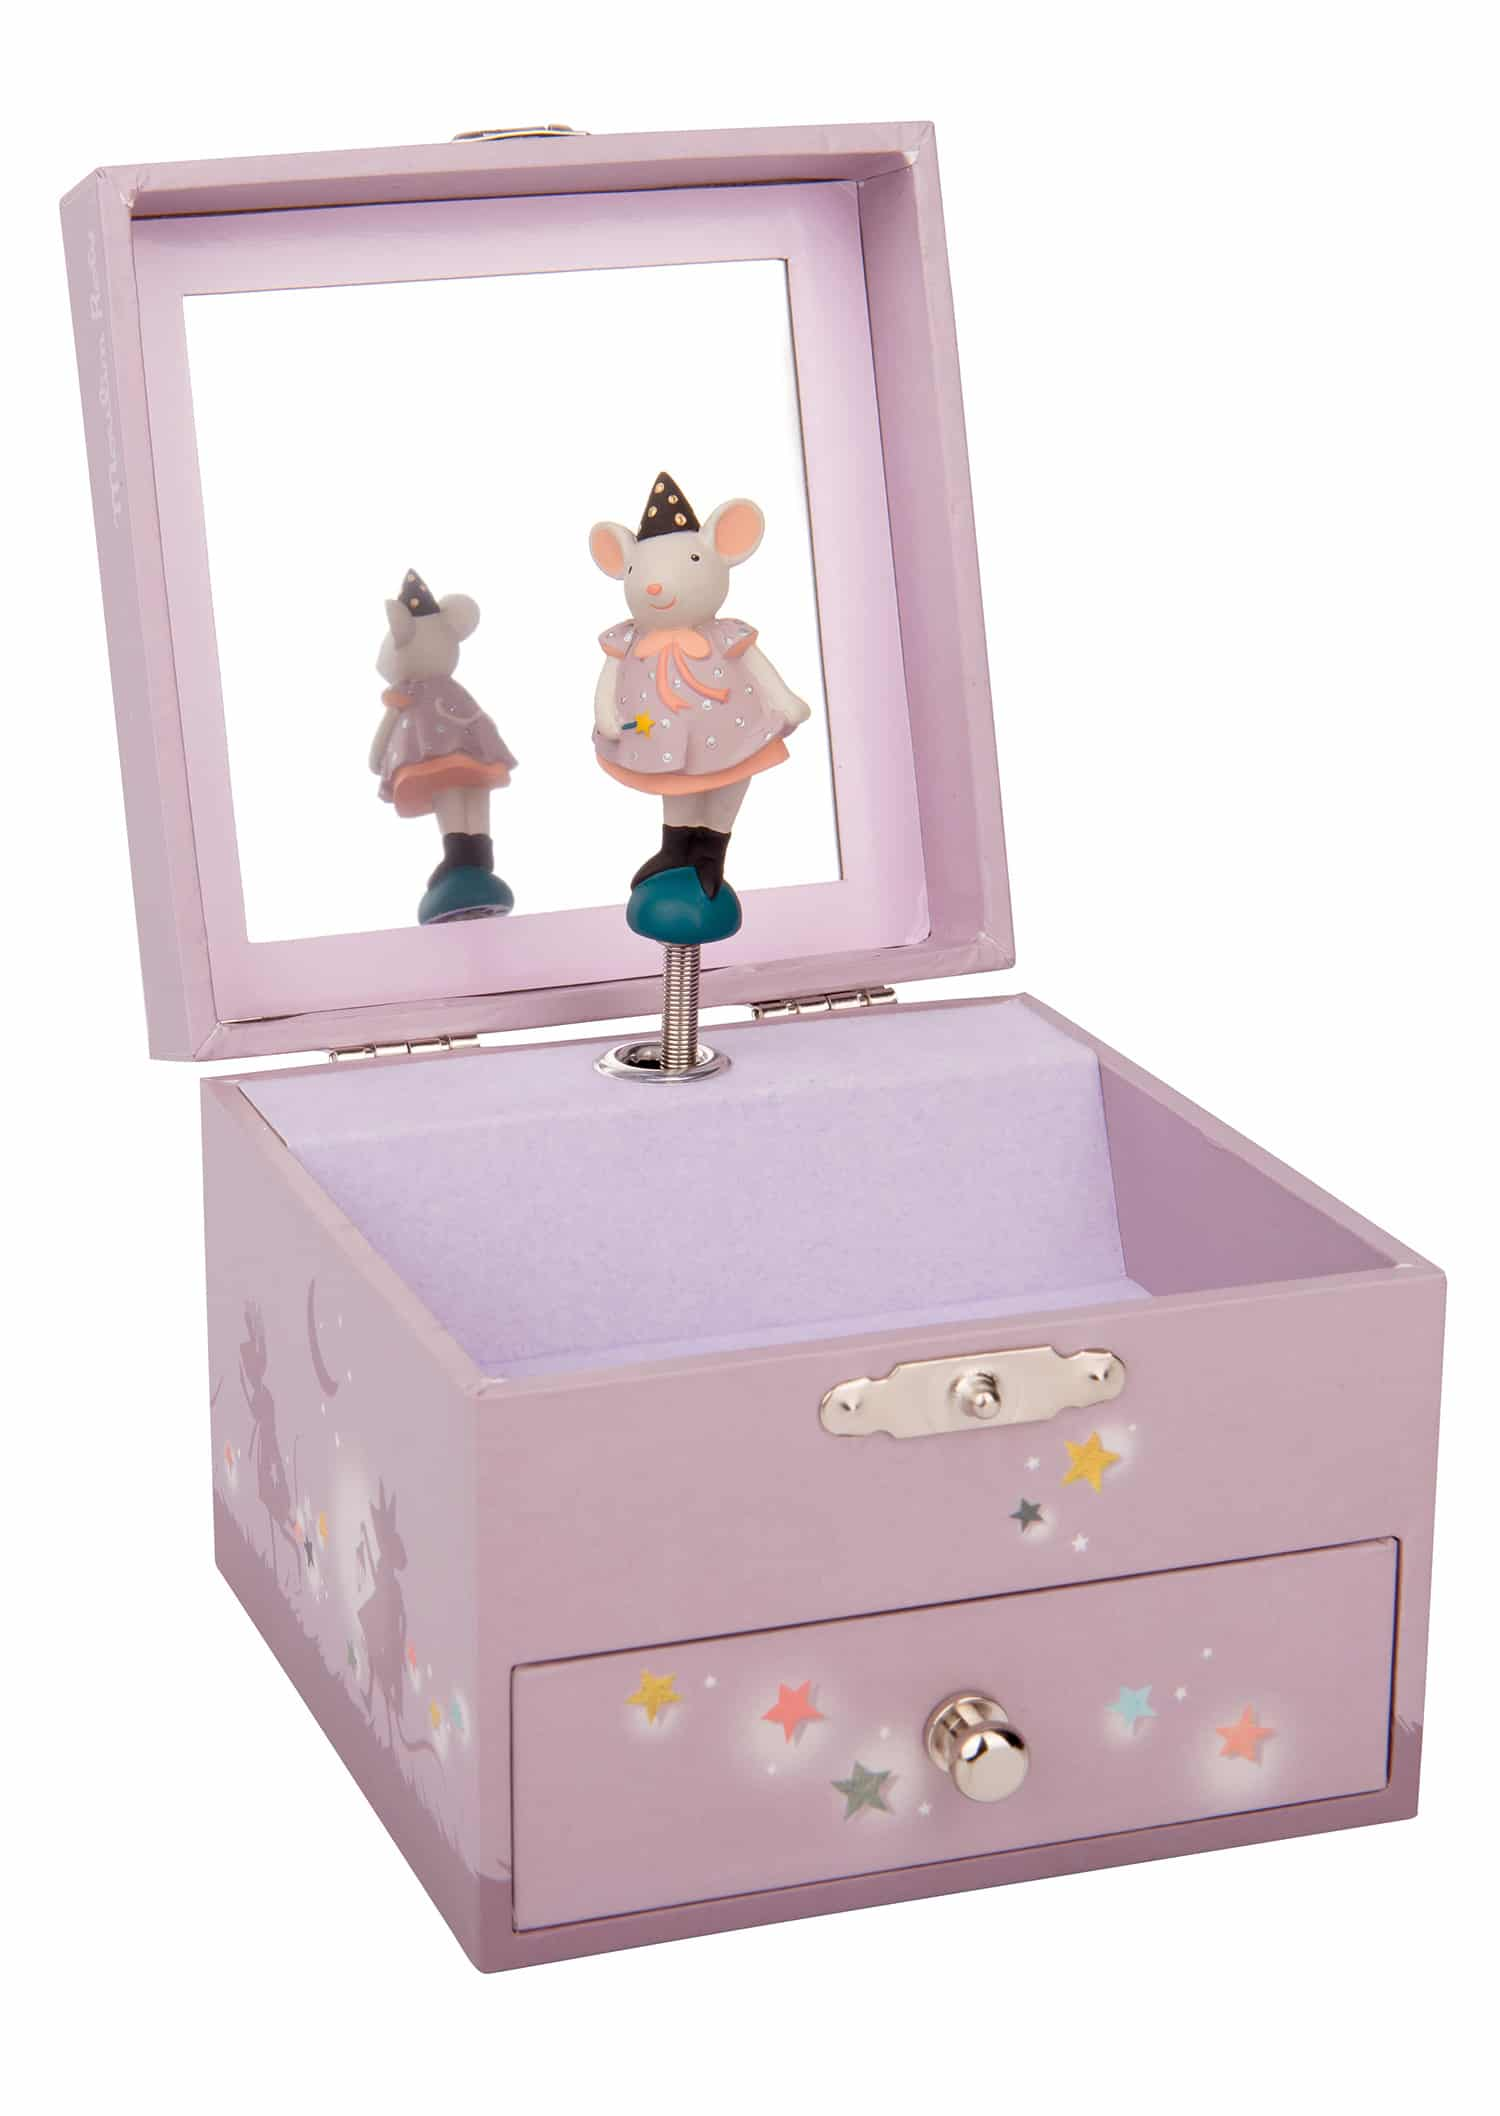 Il etait une fois musical jewellry box - Moulin Roty